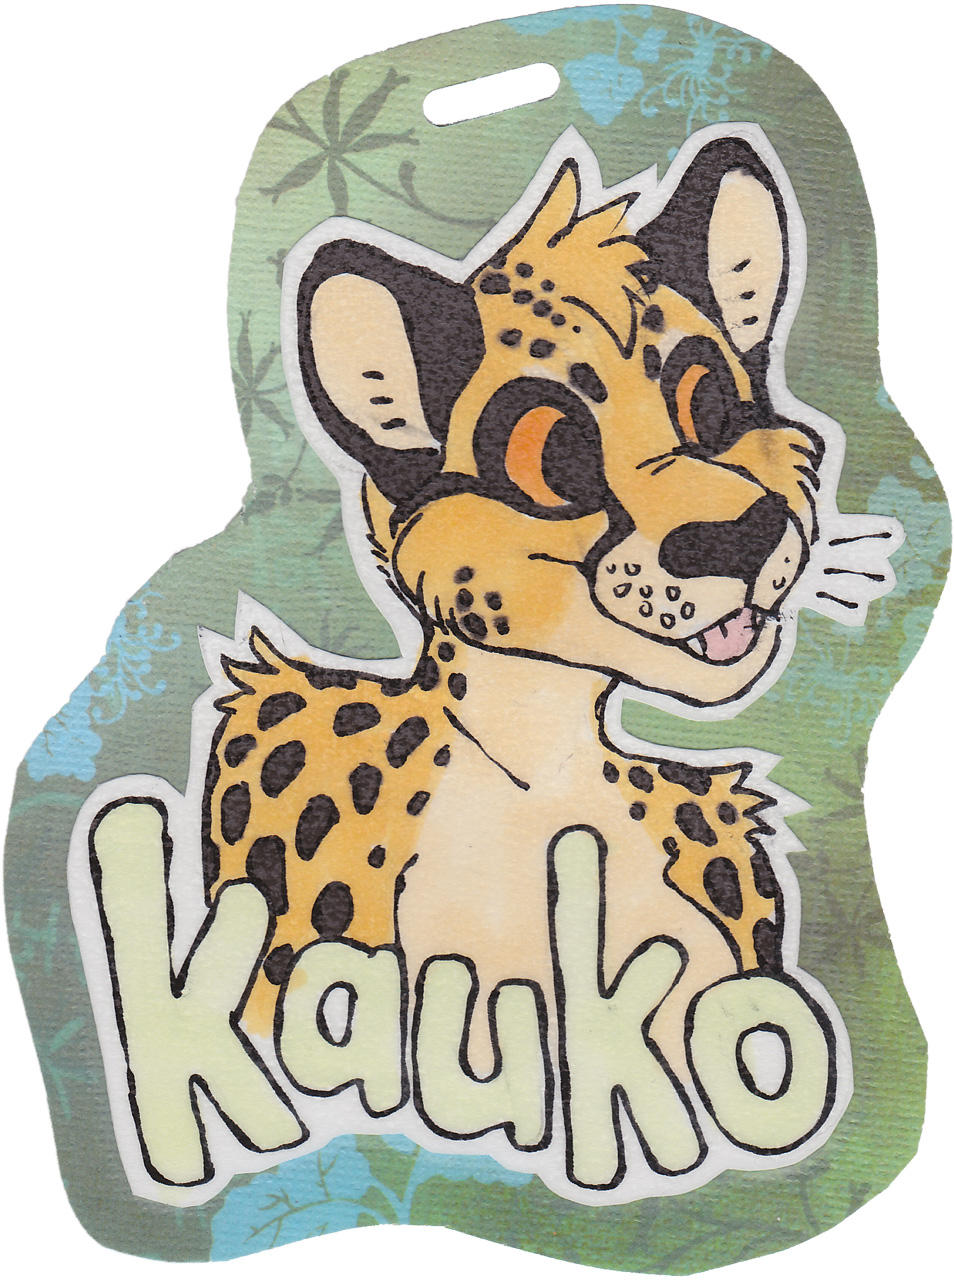 Kauko badge by Tooie